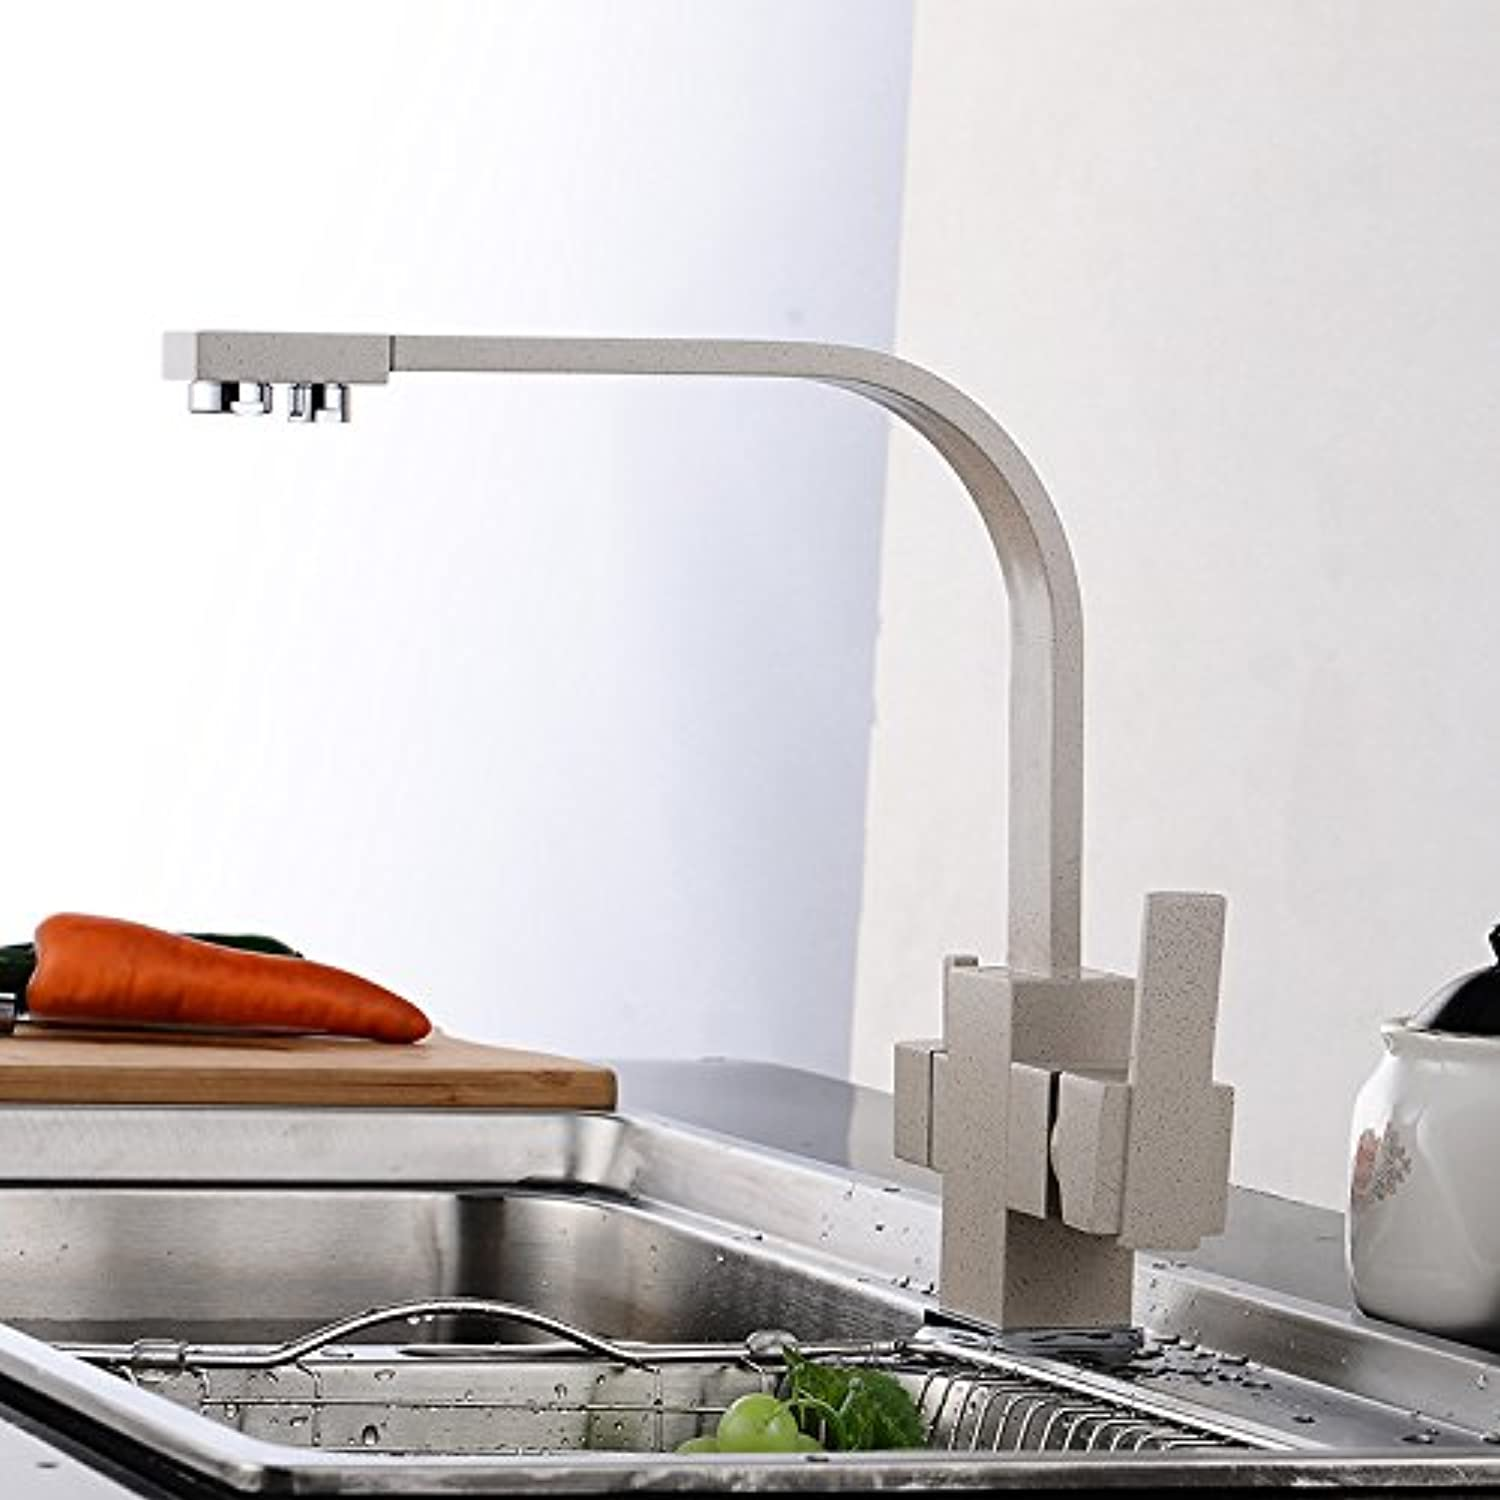 Commercial Single Lever Pull Down Kitchen Sink Faucet BrassFaucet Wrench Manufacturers Simple Dish Three with Pure Water Kitchen Faucet Scrub Wrench,8009 Sponge Packaging with Water Inlet Pipe